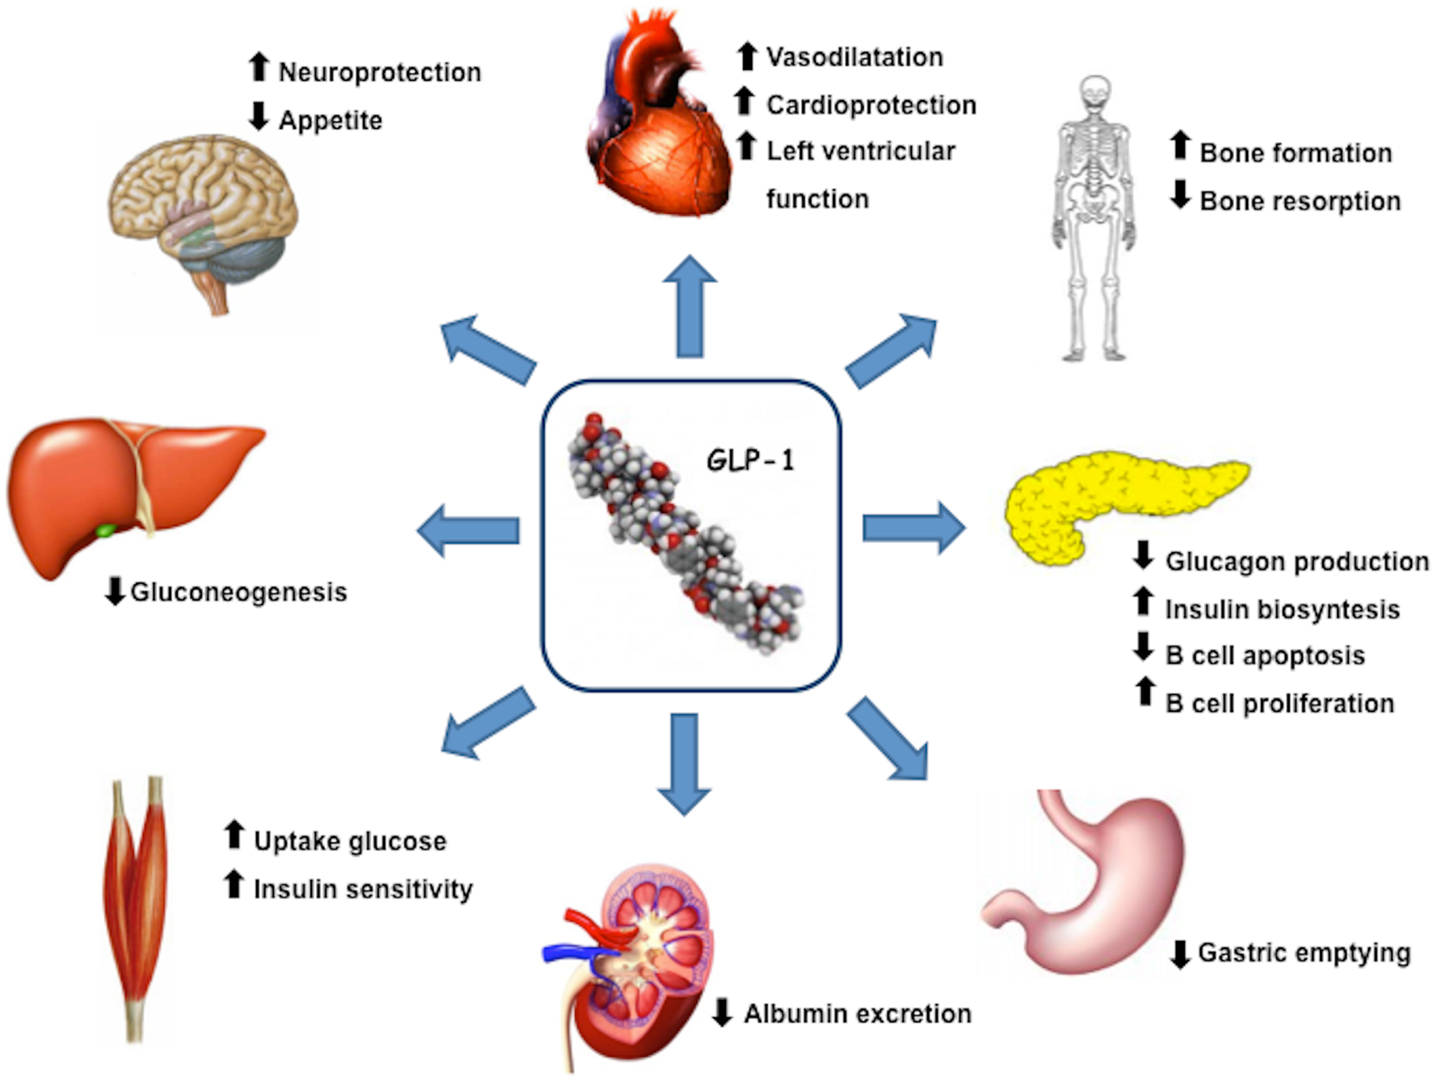 Frontiers | Beyond Glycemic Control in Diabetes Mellitus